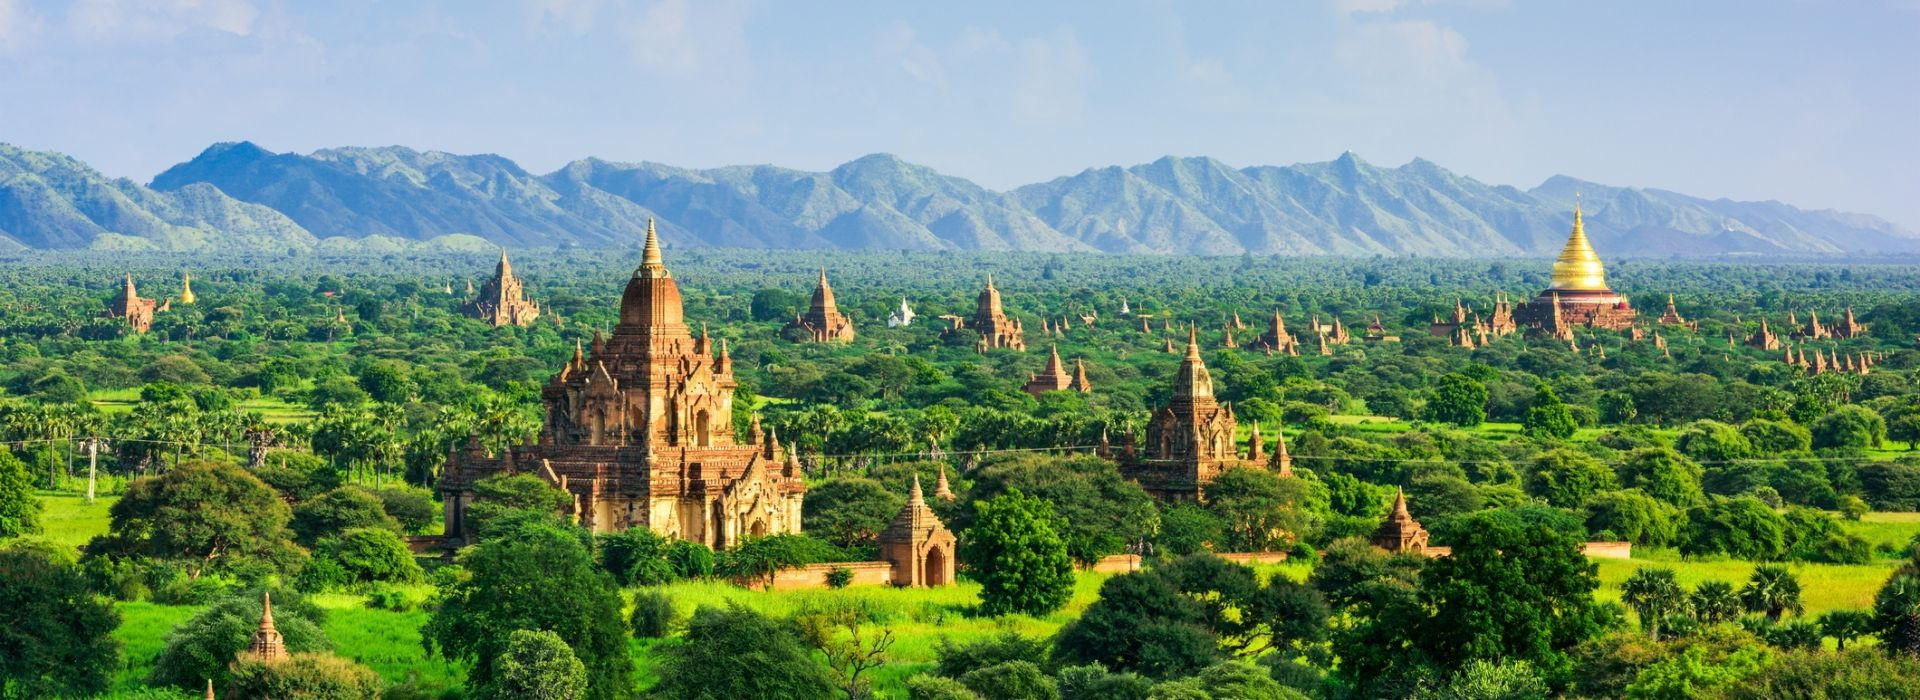 Sightseeing, attractions, culture and history Tours in Yangon